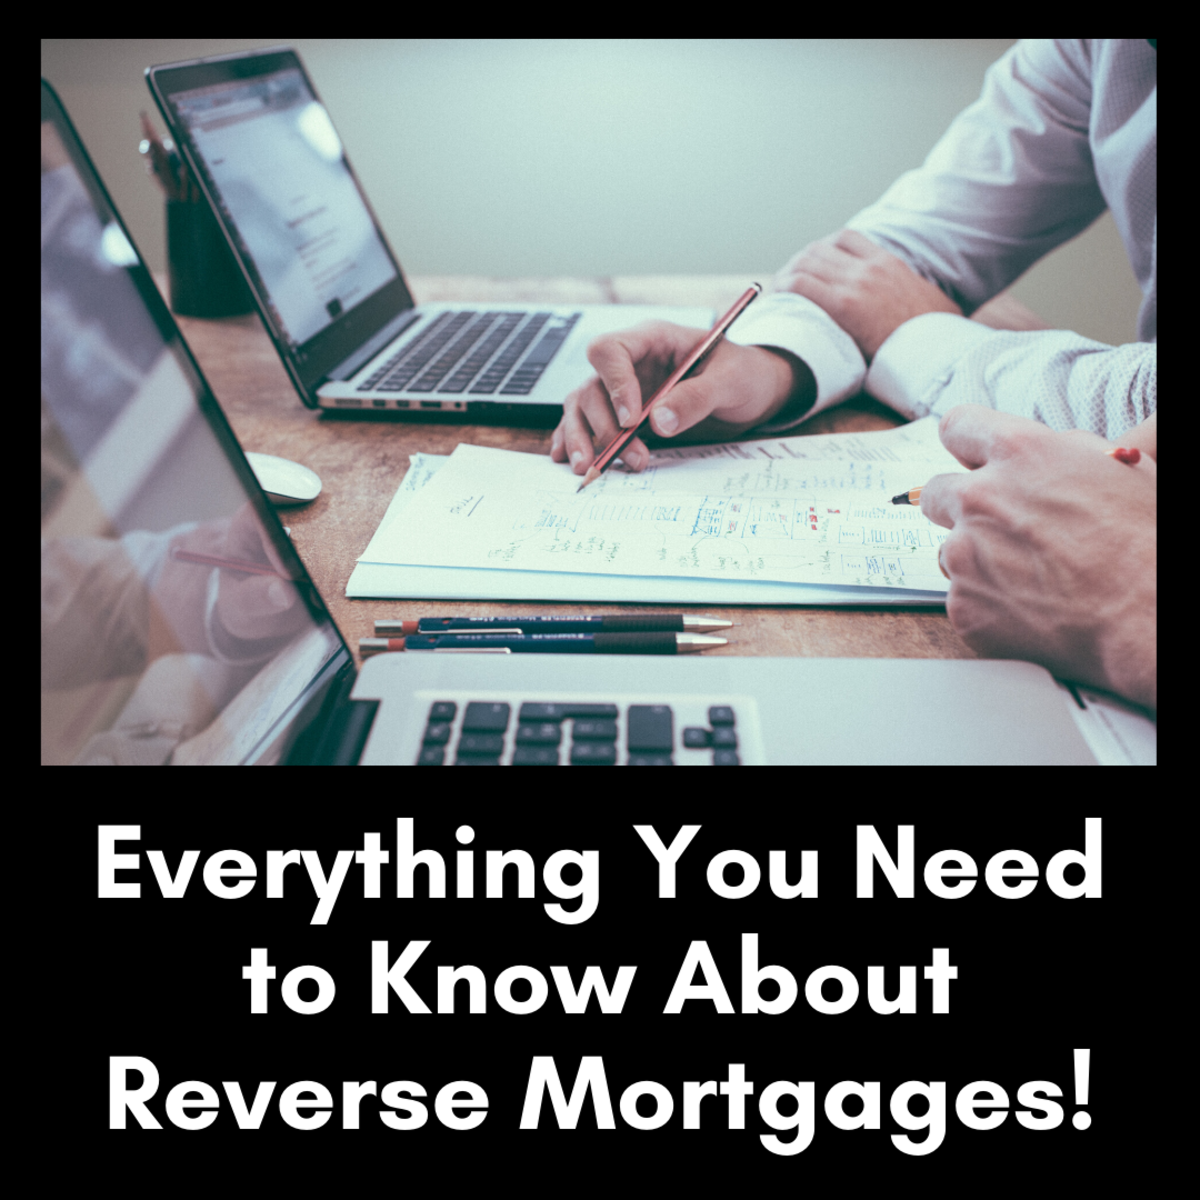 Read on to learn why a reverse mortgage may be more expensive and riskier than other alternatives.